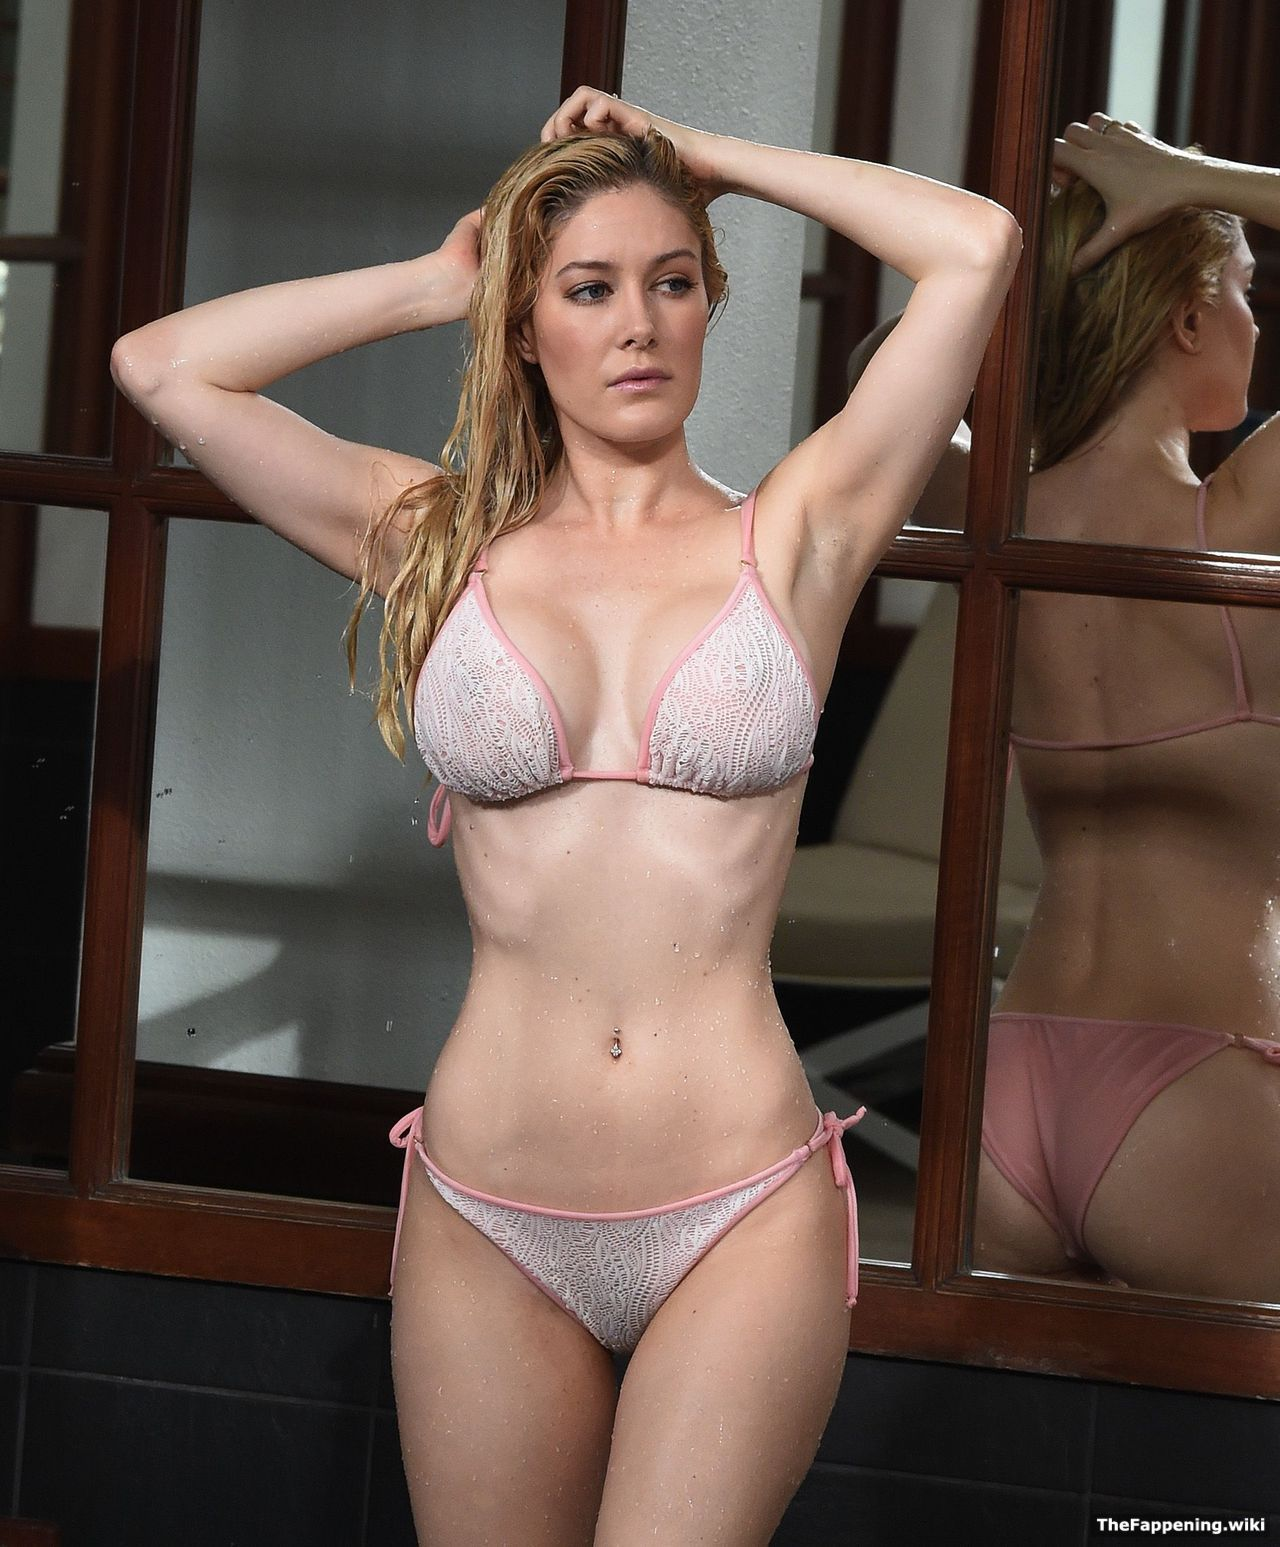 heidi_montag cleavages awesome (2)